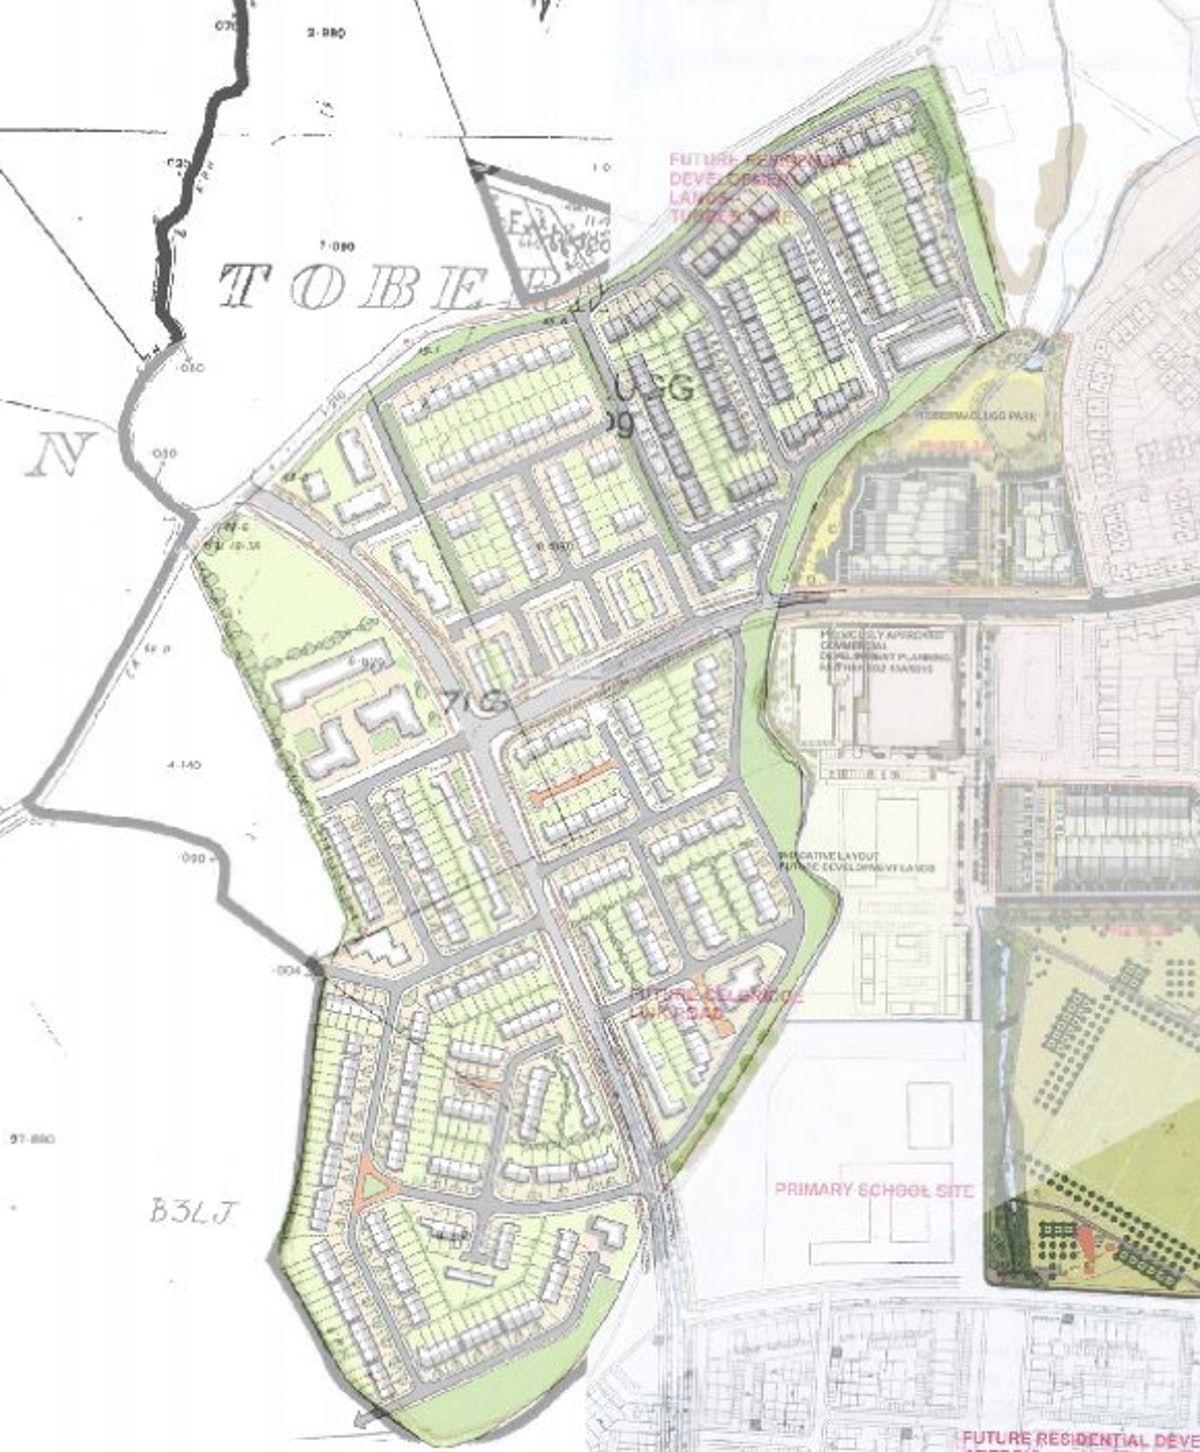 Hallwell is a new residential quarter that forms part of the Adamstown Strategic Development Zone.